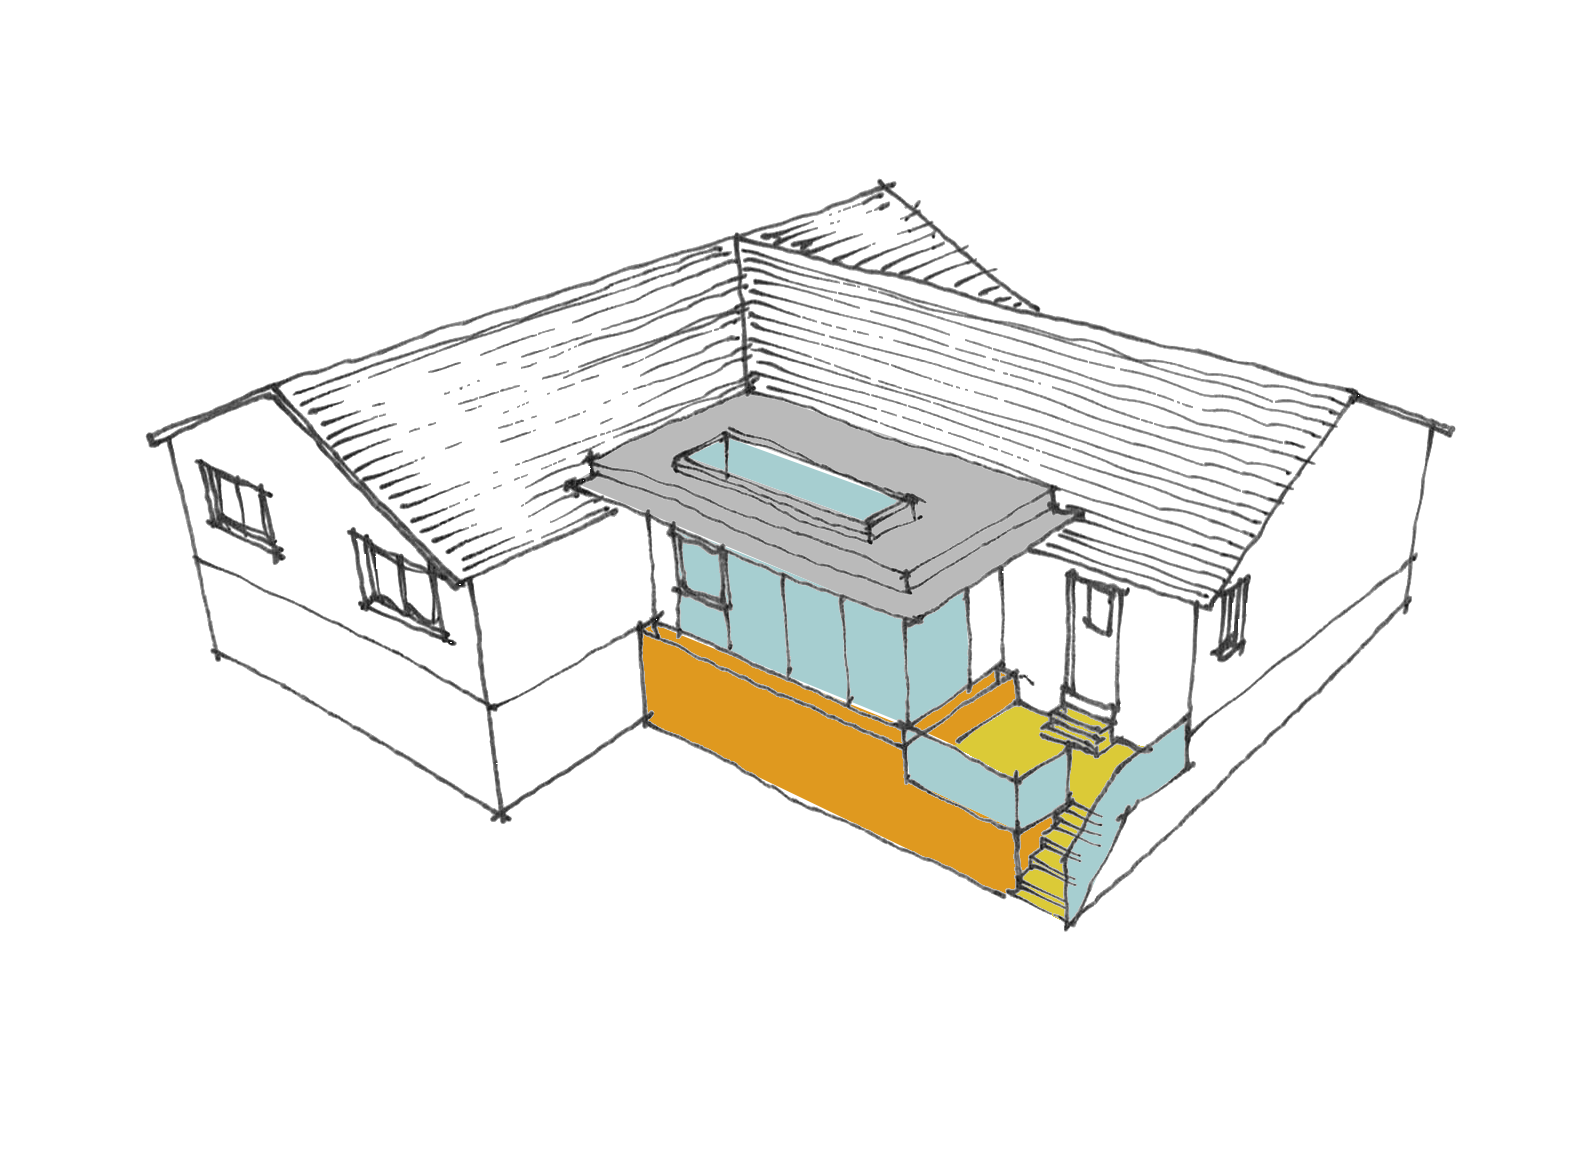 Flat roof, contemporary form as part of the feasibility design study